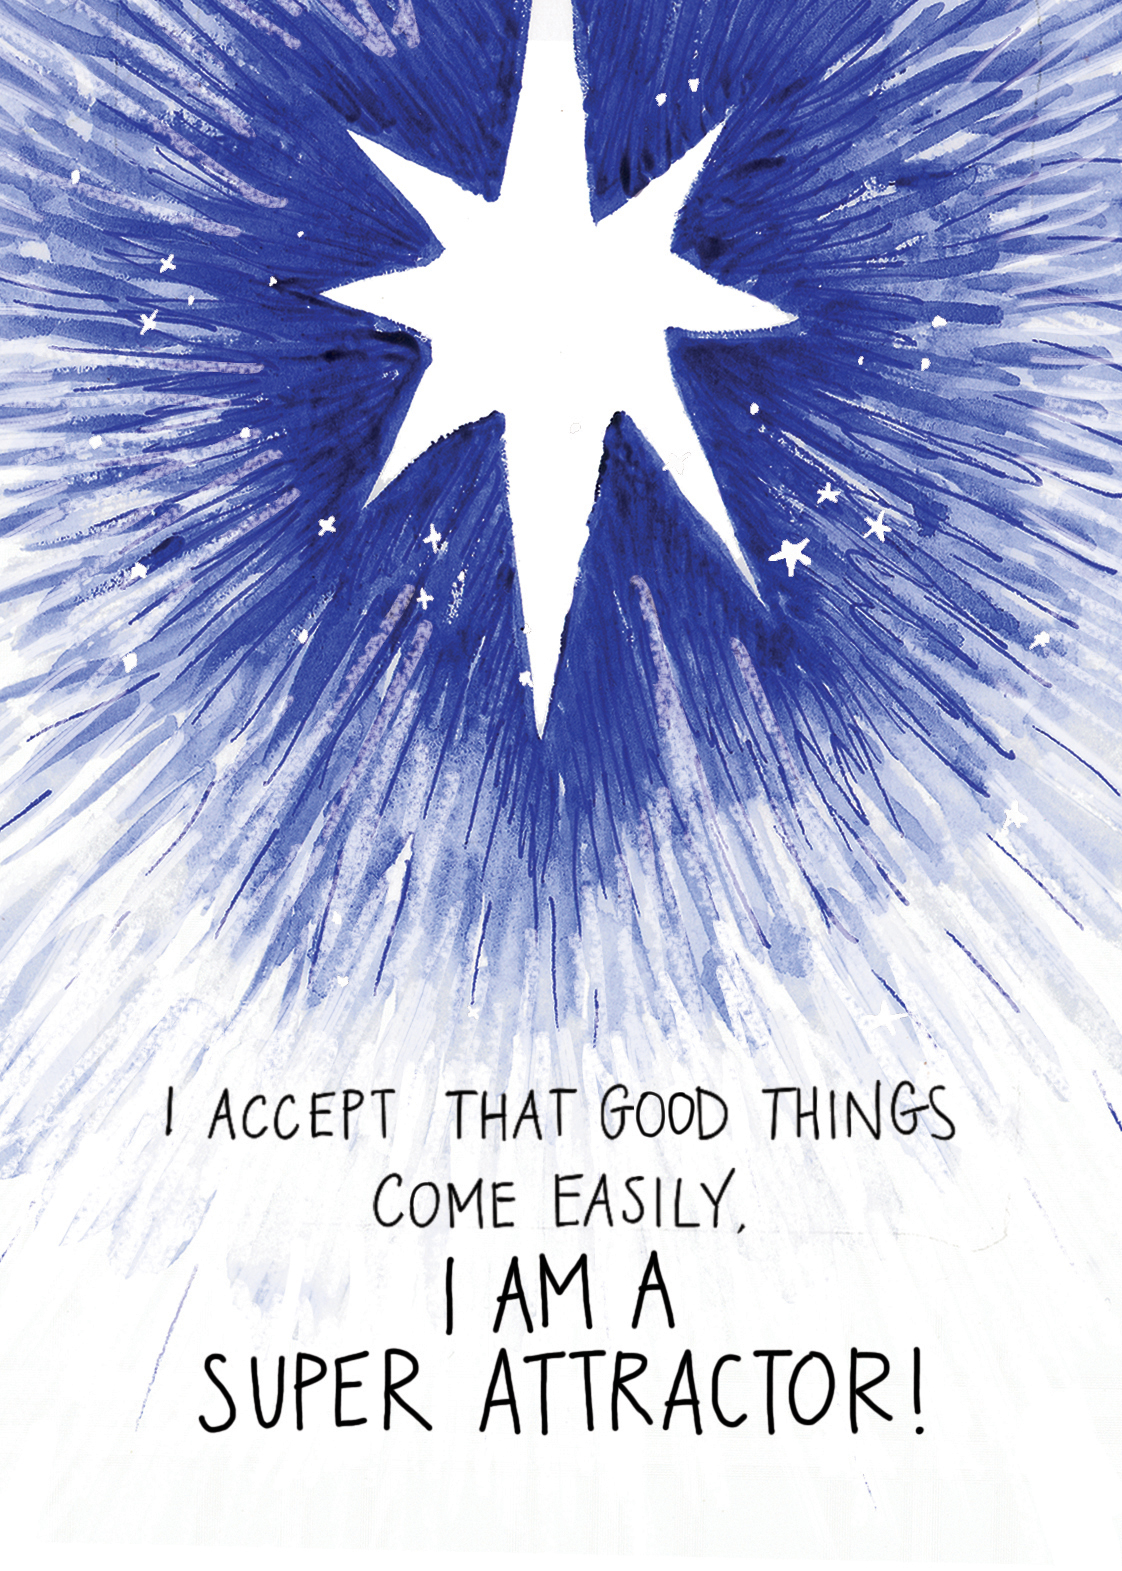 I accept that good things come easily. I am a Super Attractor | Super Attractor card deck